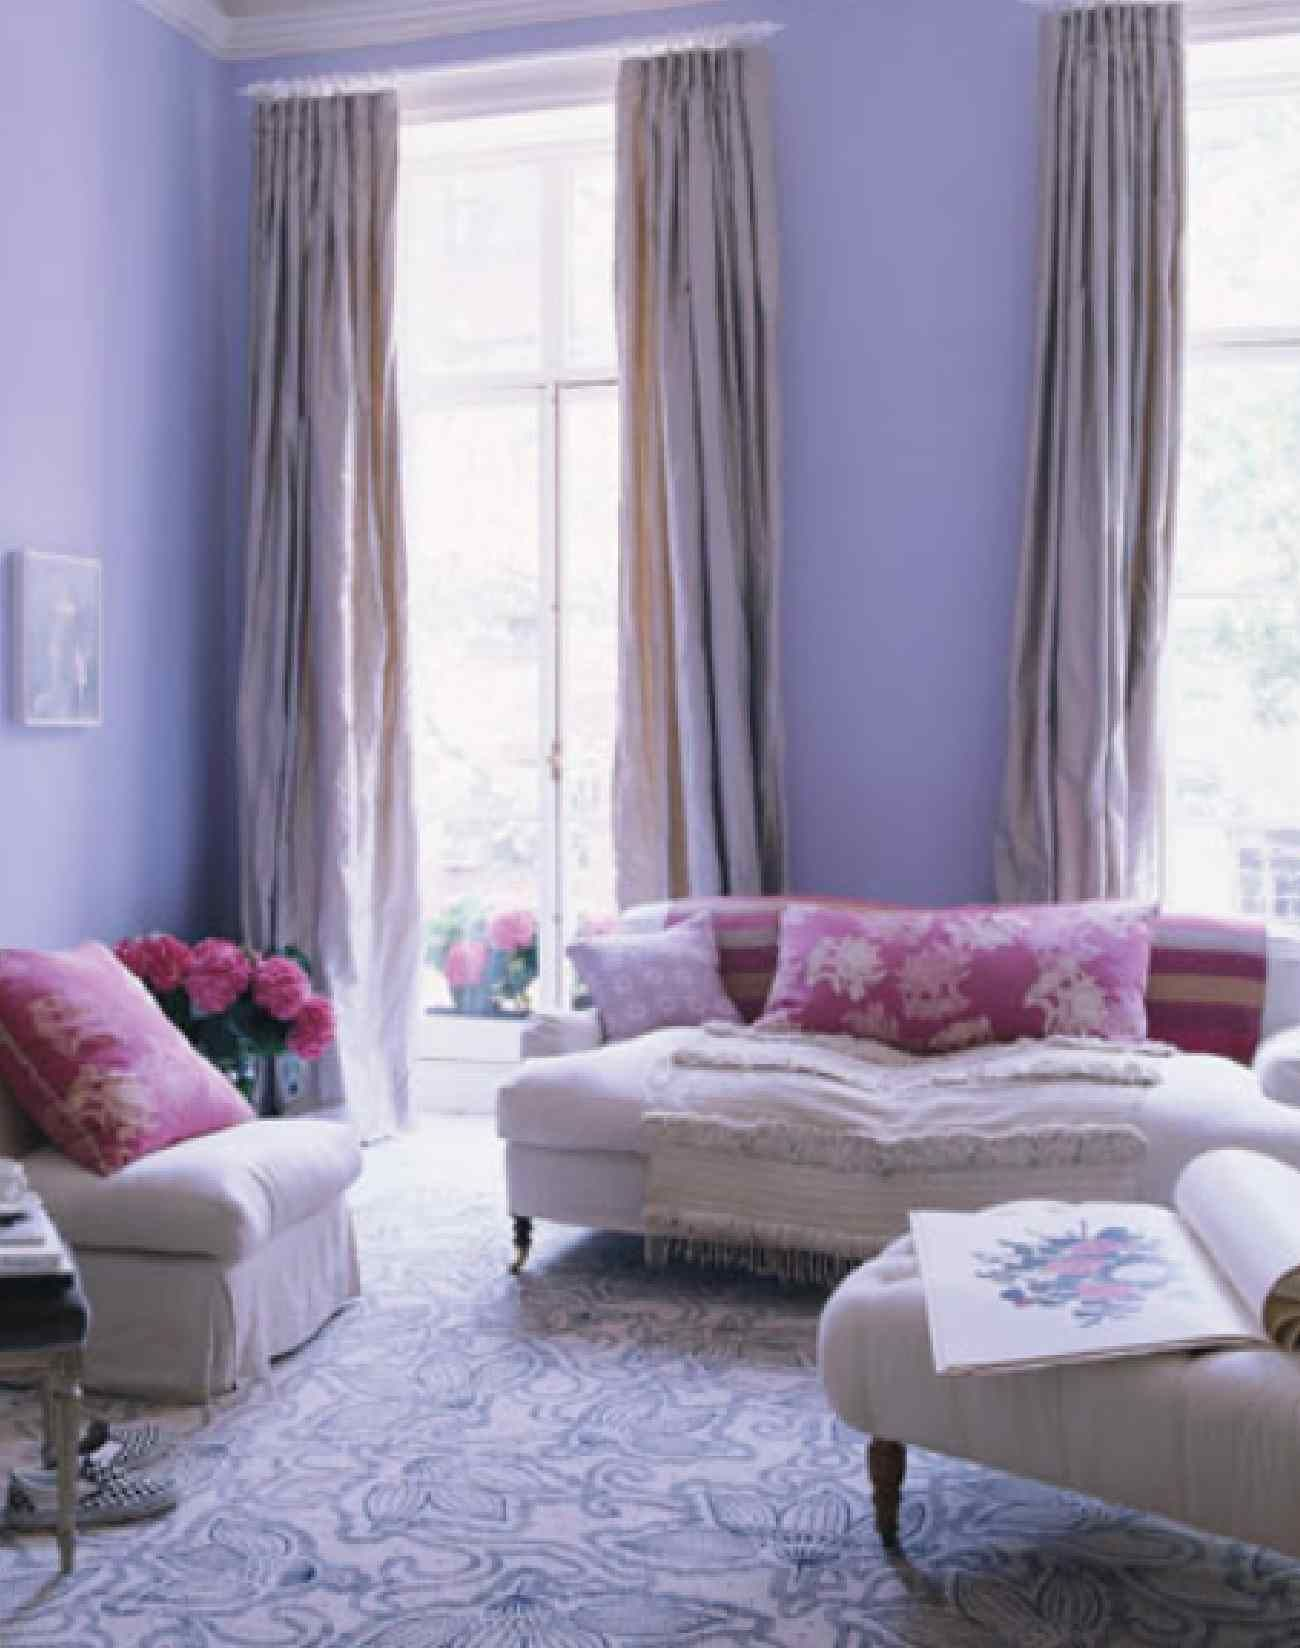 1000 images about purple living room ideas on pinterest purple living rooms and purple accents